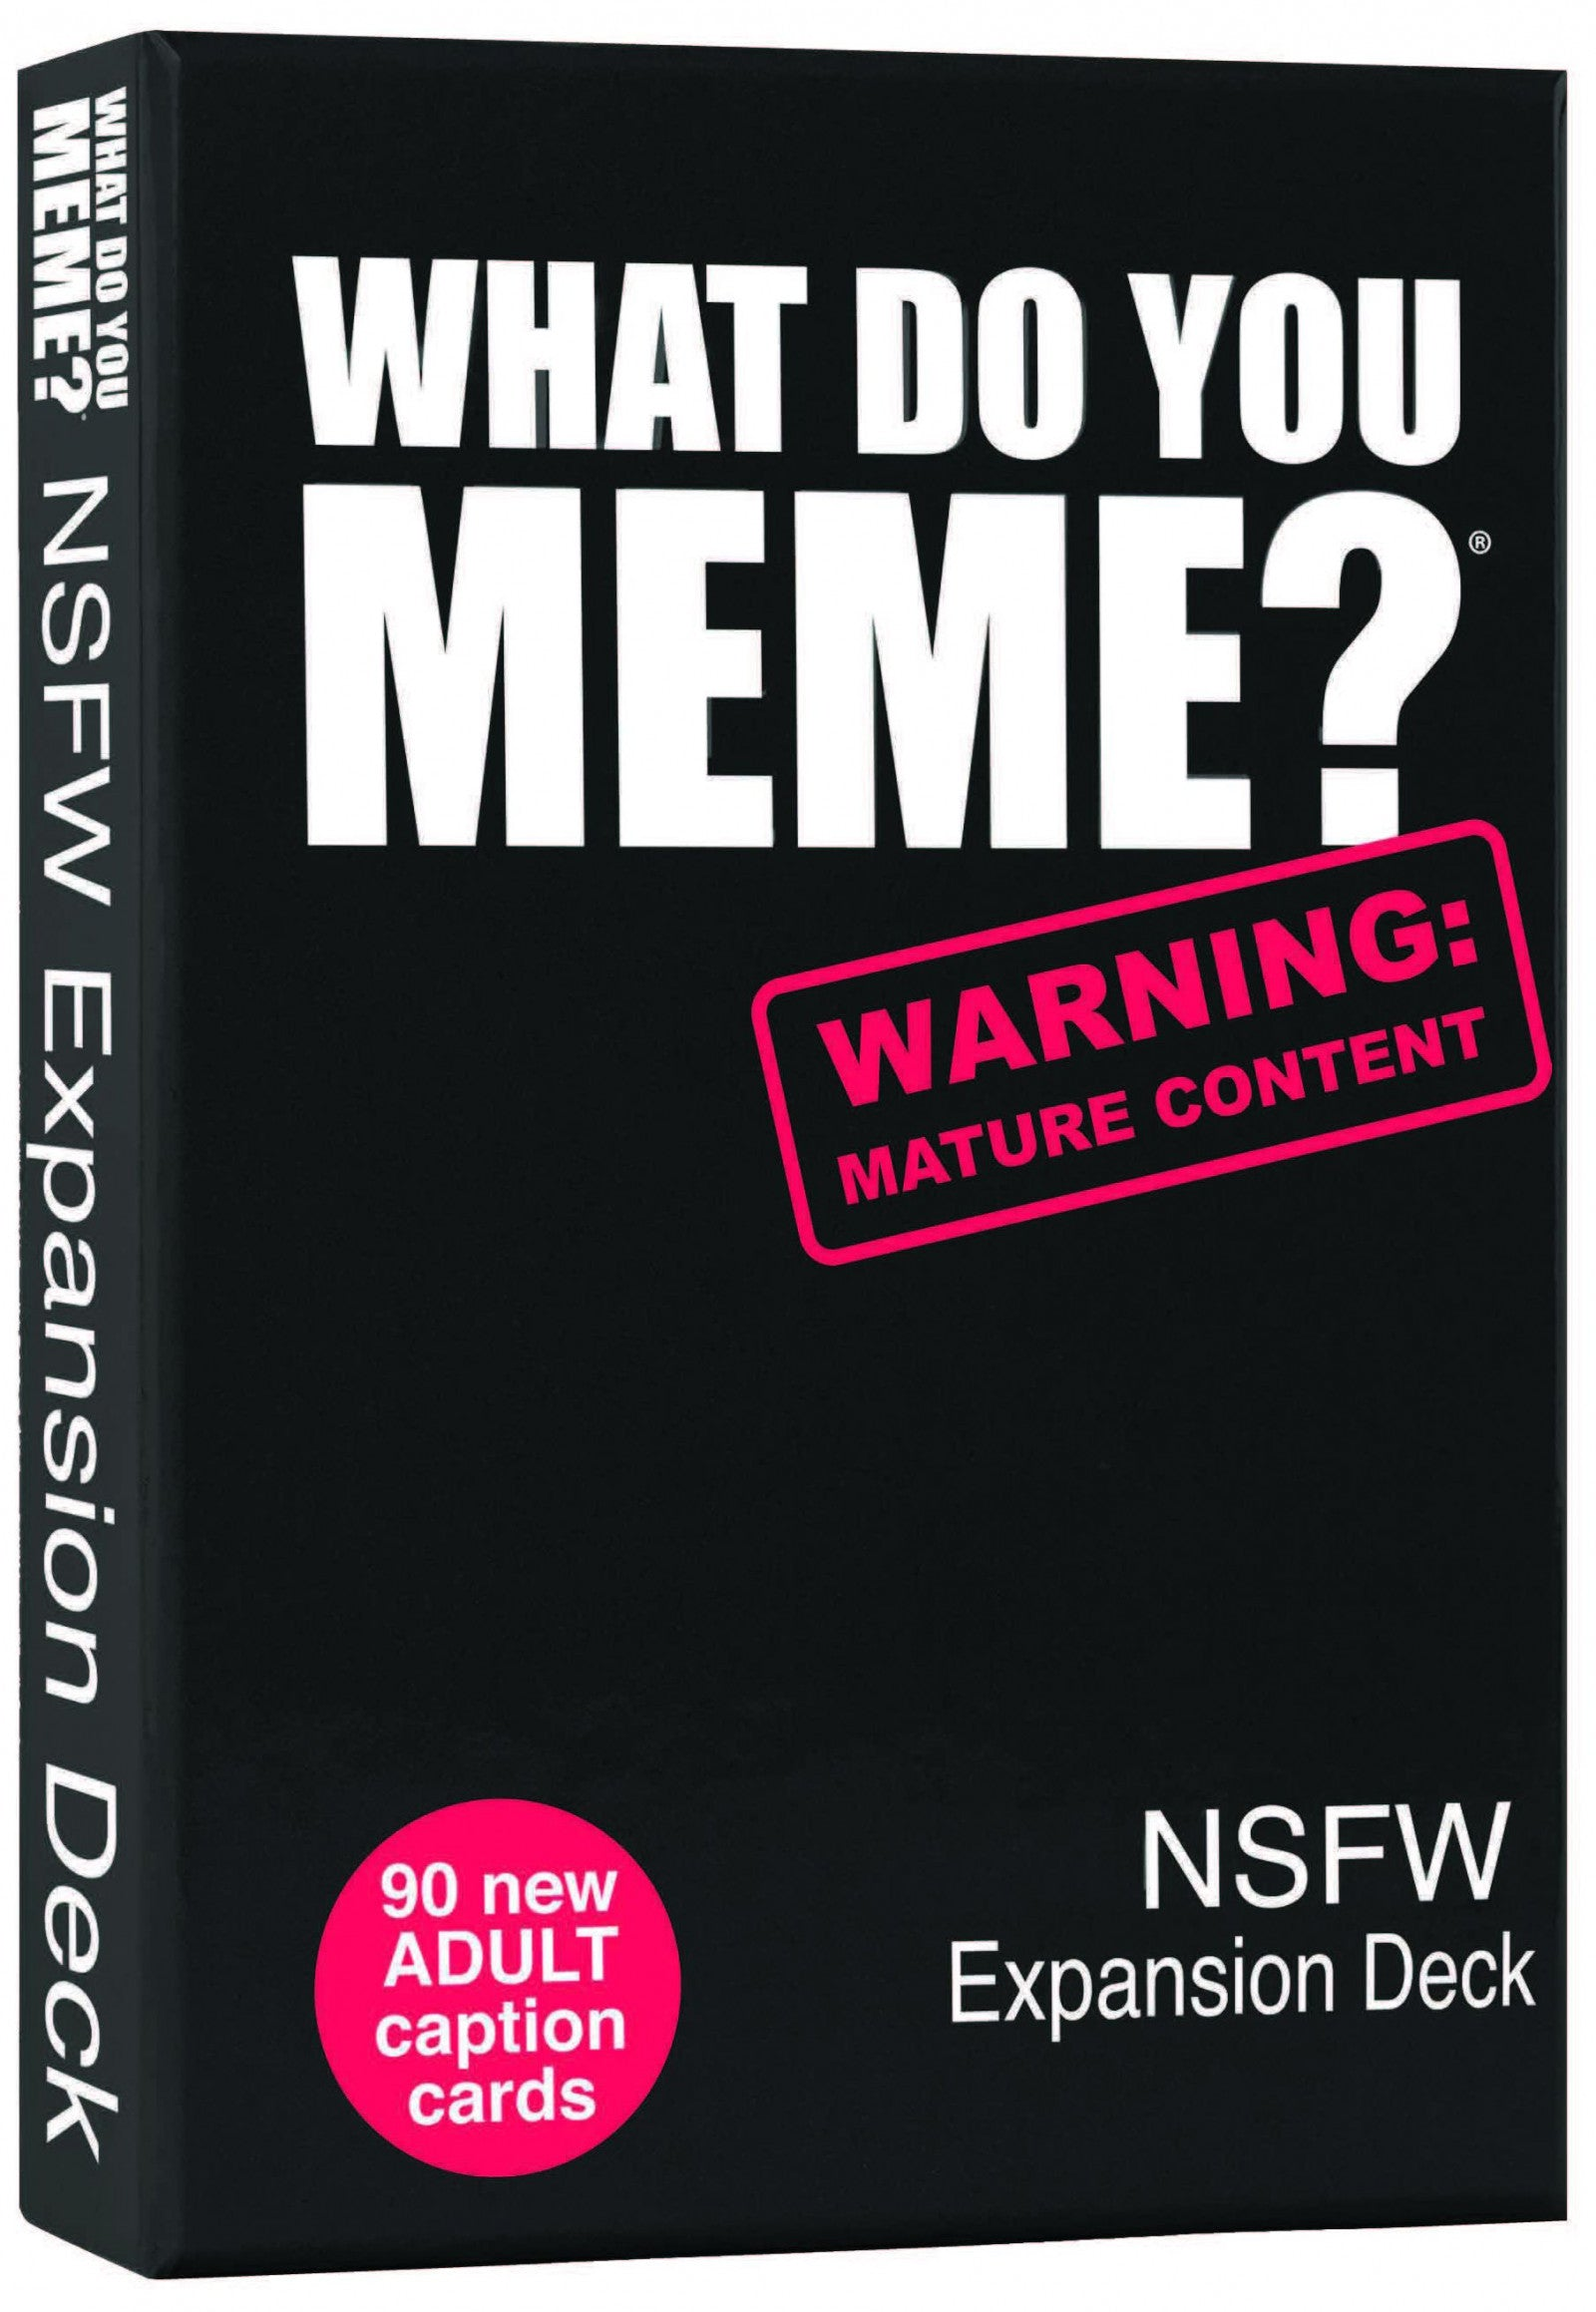 What Do You Meme? NSFW Expansion Deck | Gametraders Macarthur Square